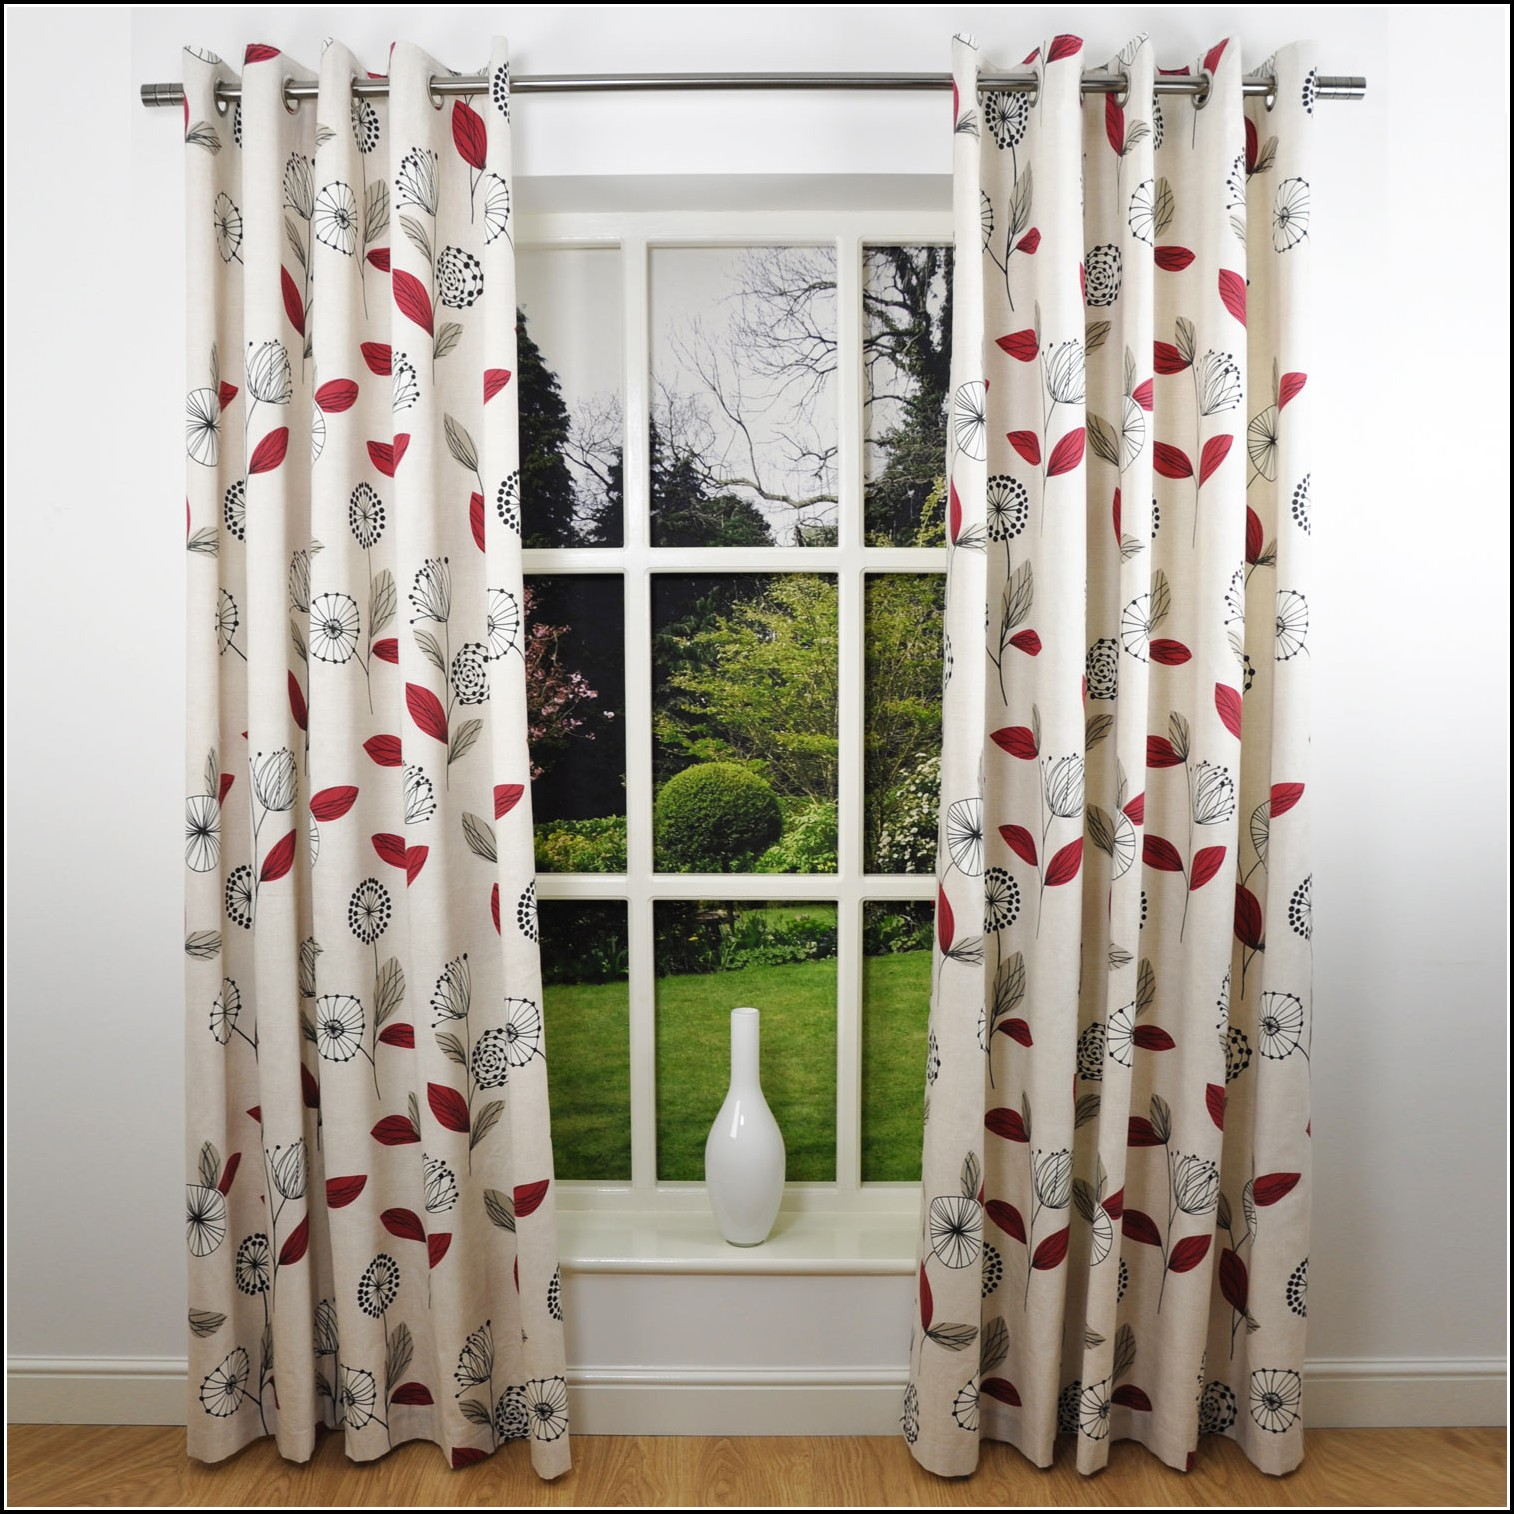 gray and red kitchen curtains - curtains : home design ideas #kwnmwmeqvy30682